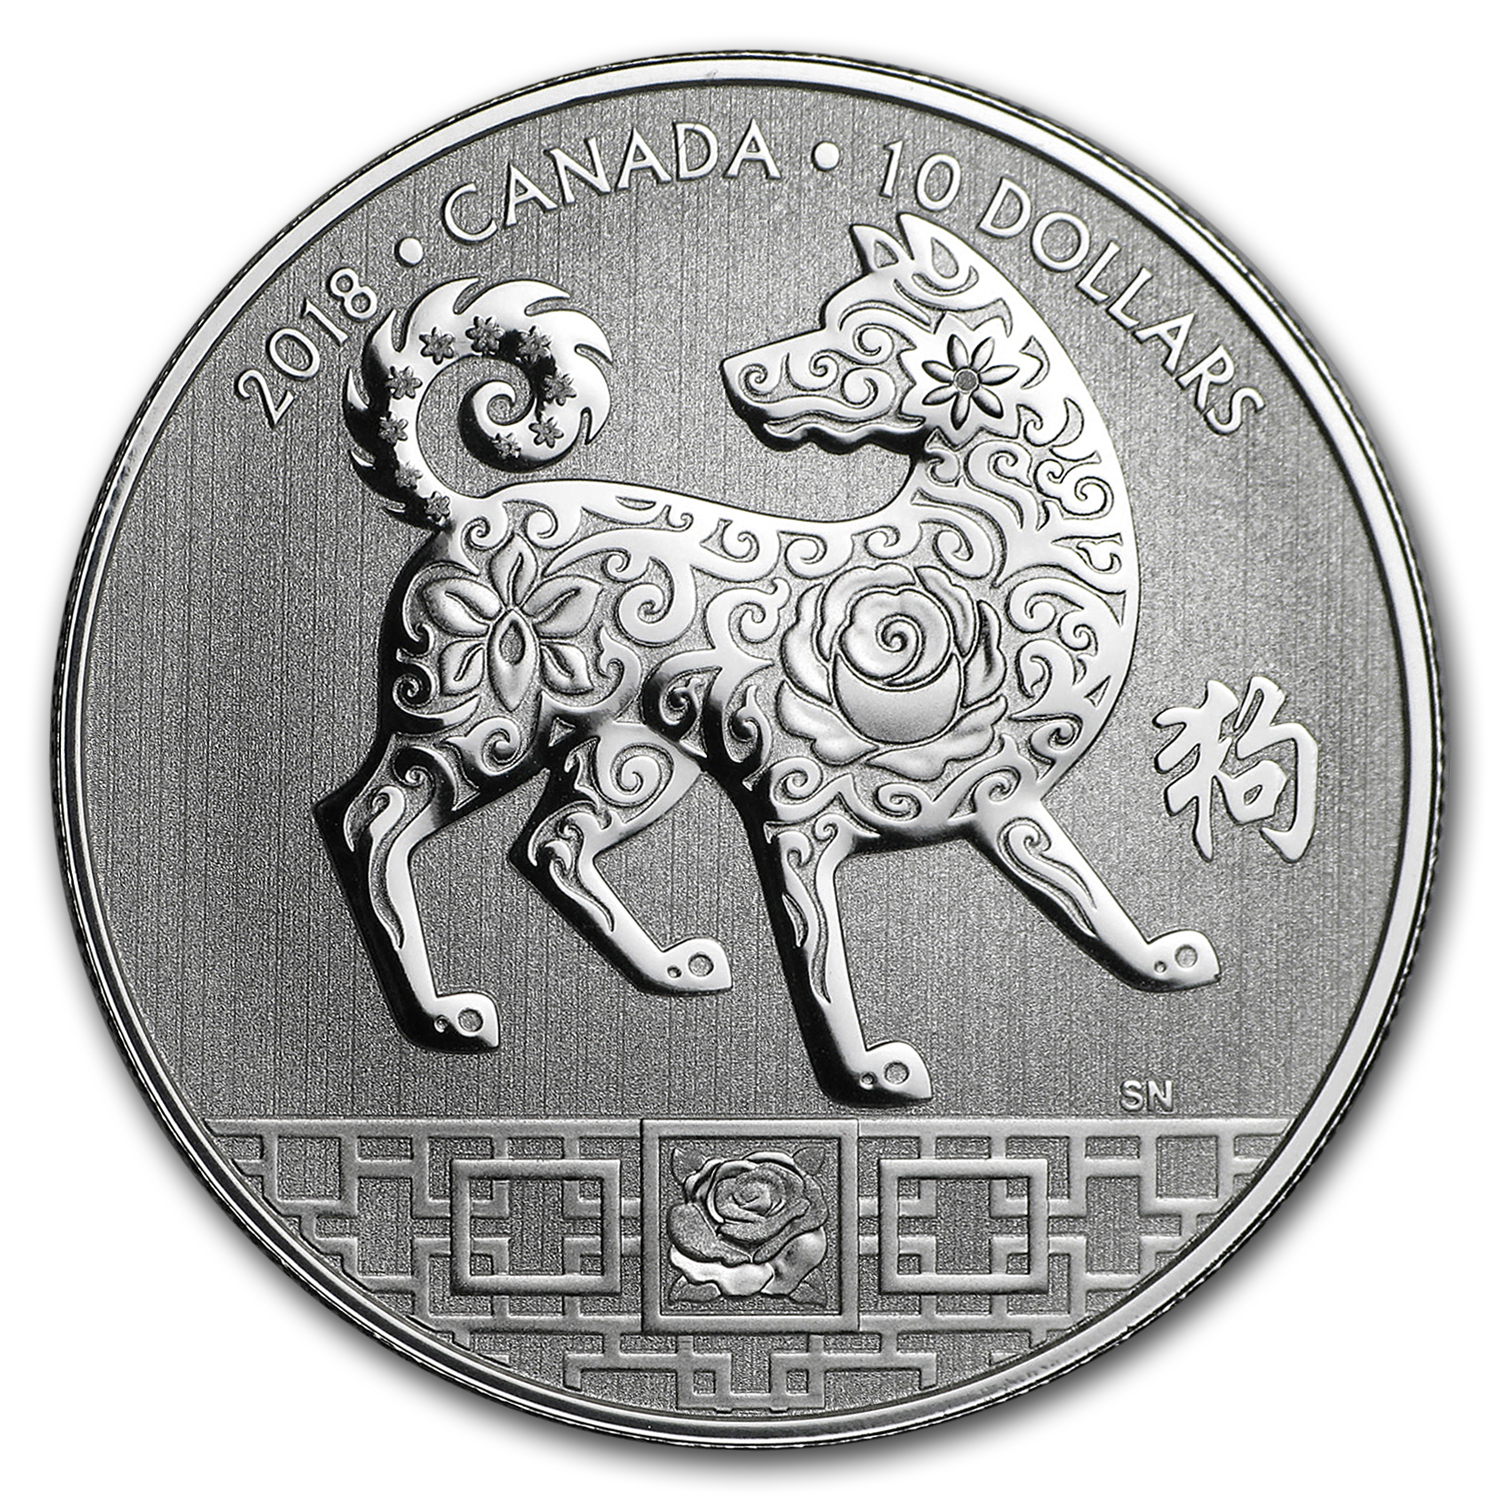 2018 Canada 1/2 oz Proof Silver $10 Lunar Year of the Dog